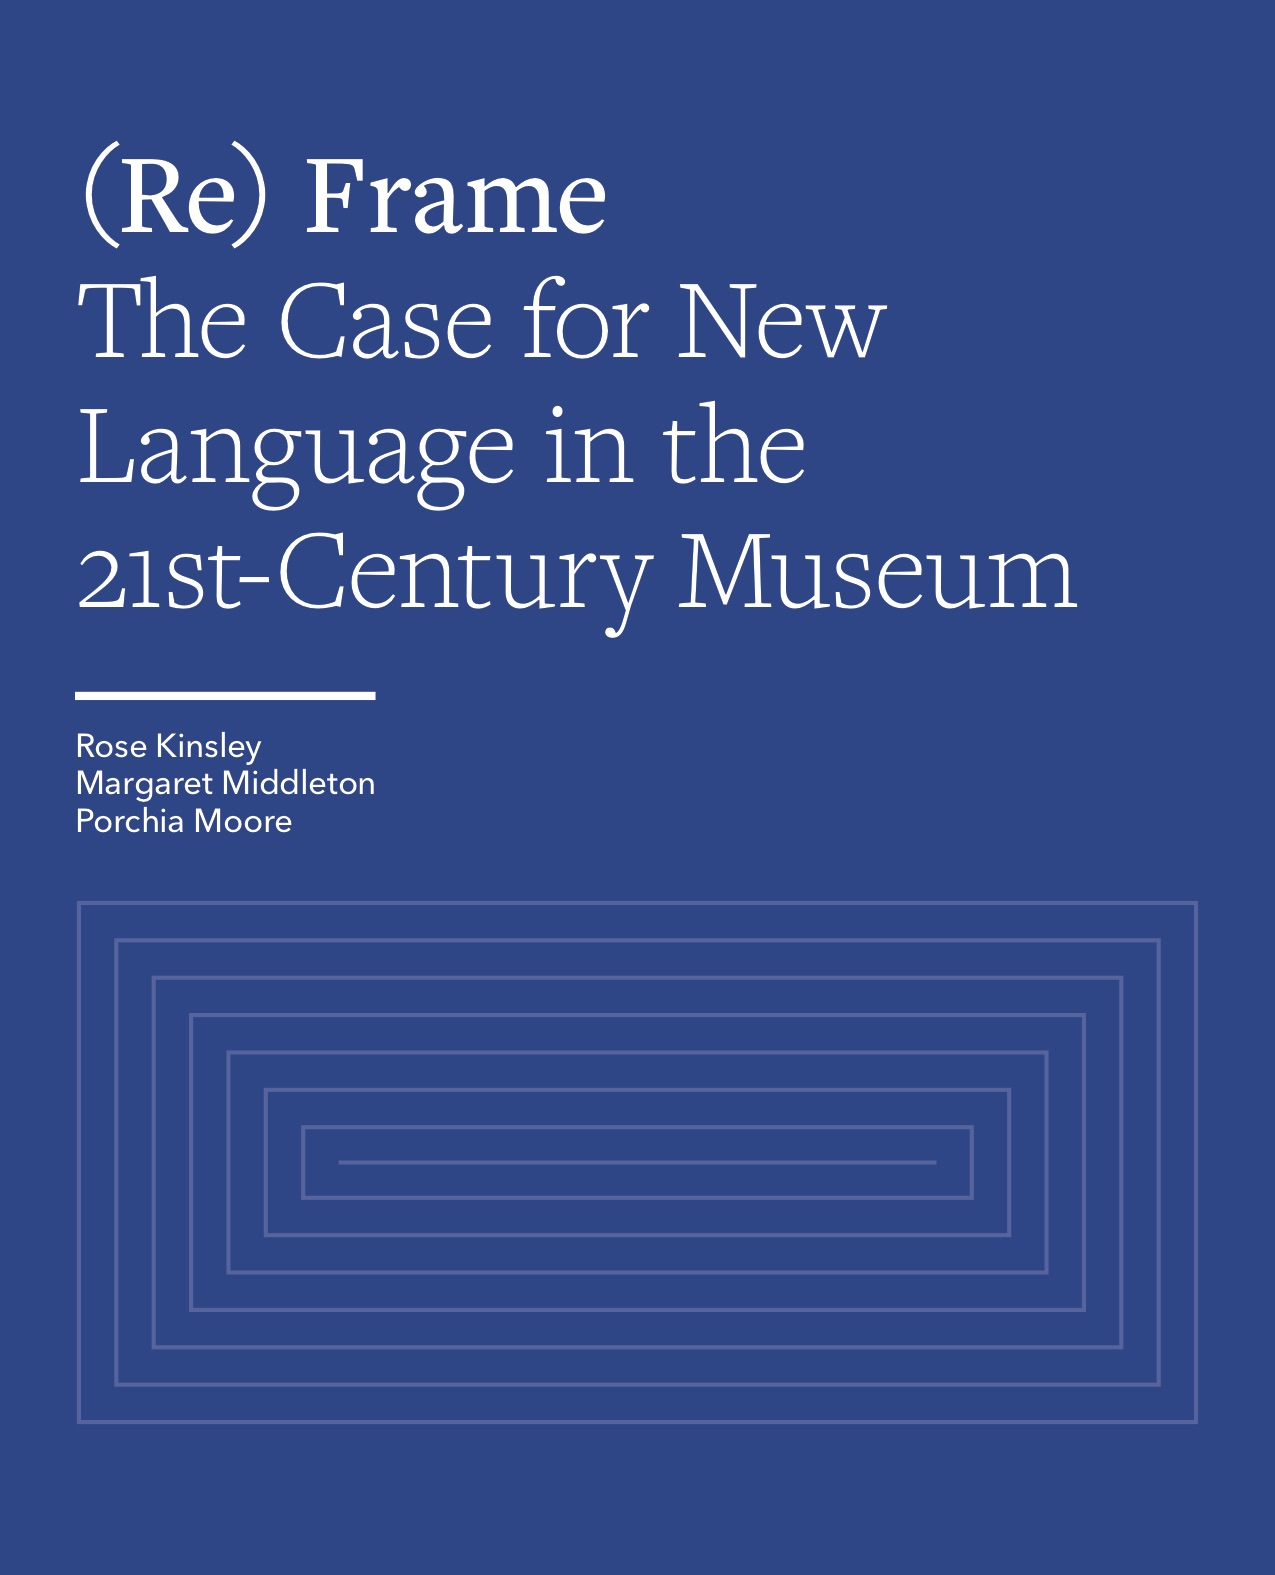 Exhibition_ReFrame